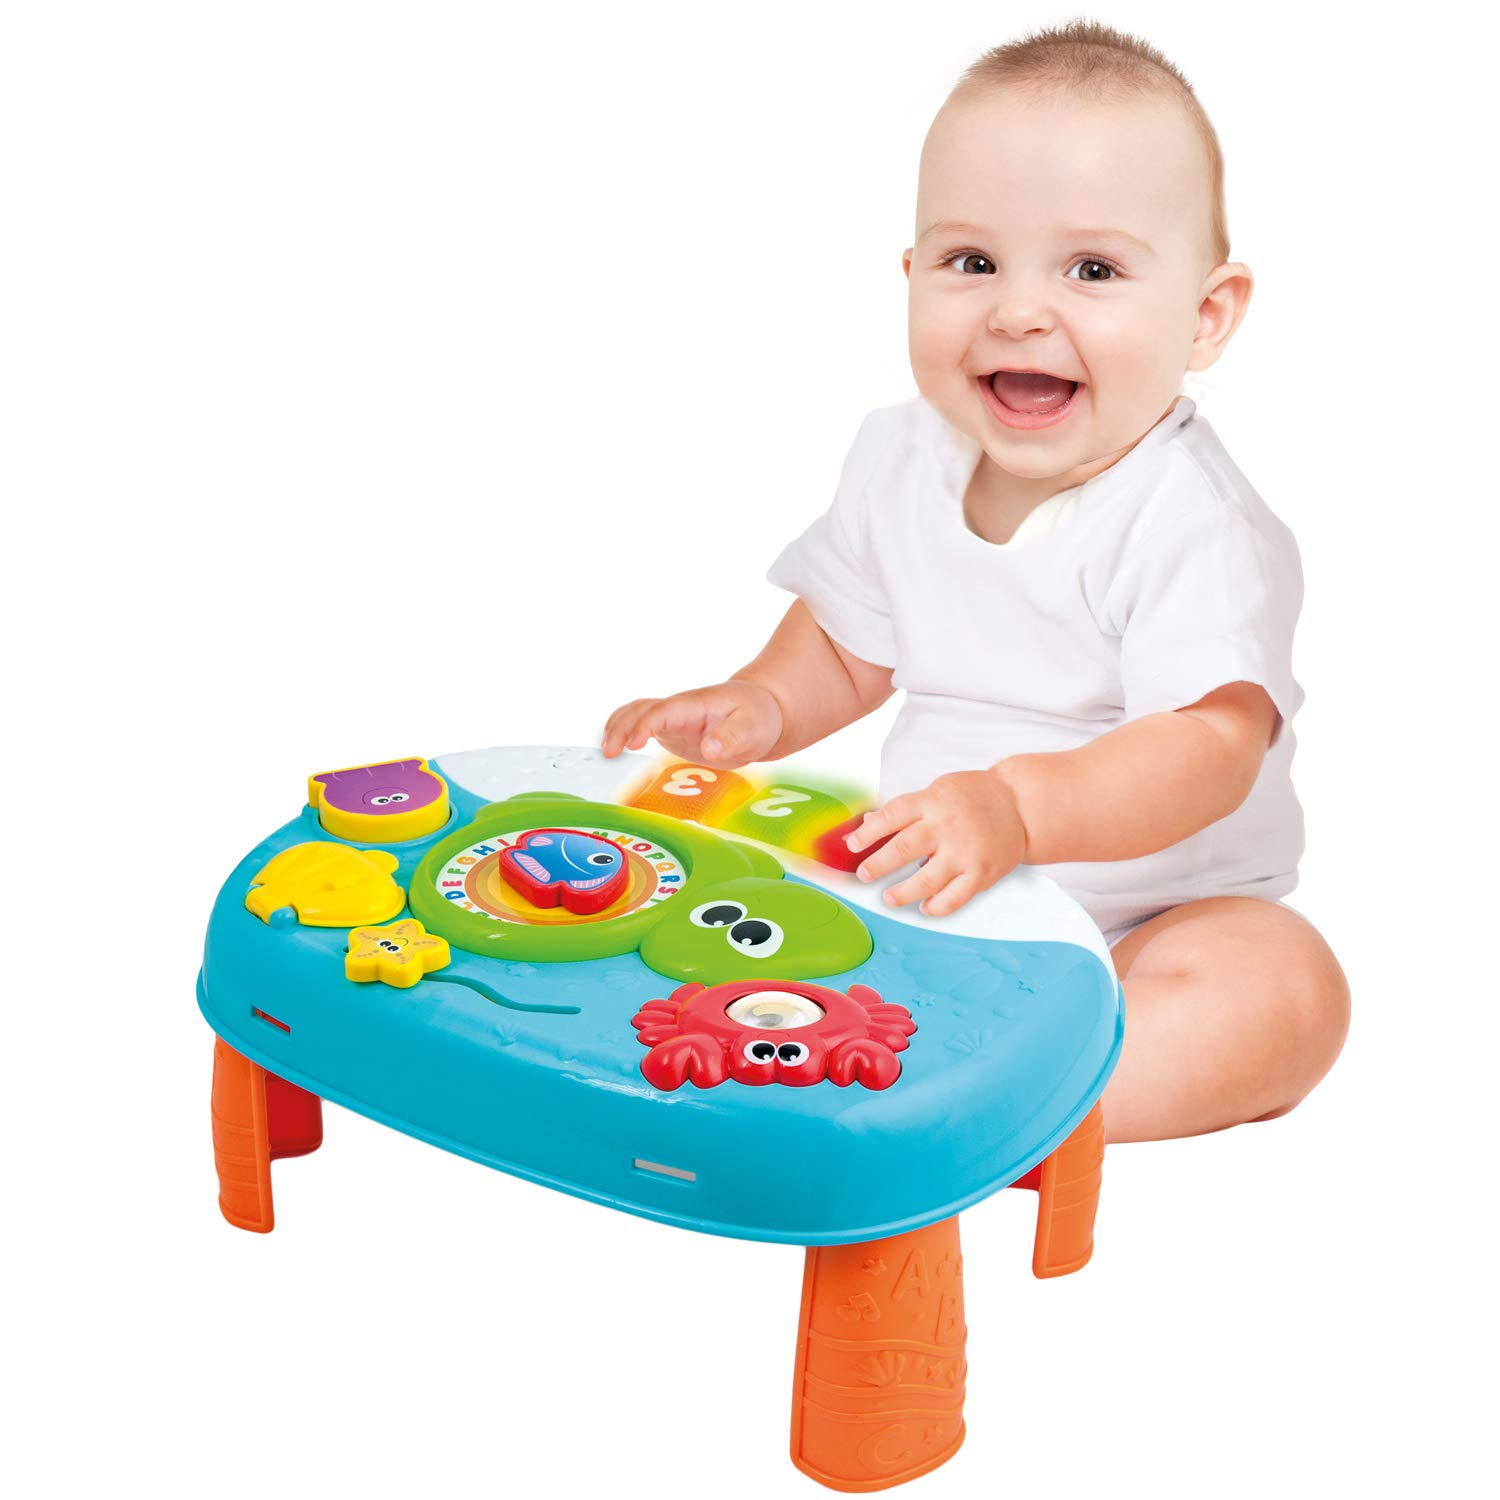 Activity Table for 1 Year Old and Up. 2-in-1 Baby Activity Center. Interactive Learning Toy Piano with Fun Ocean Characters for Toddlers and Kids Boxiki